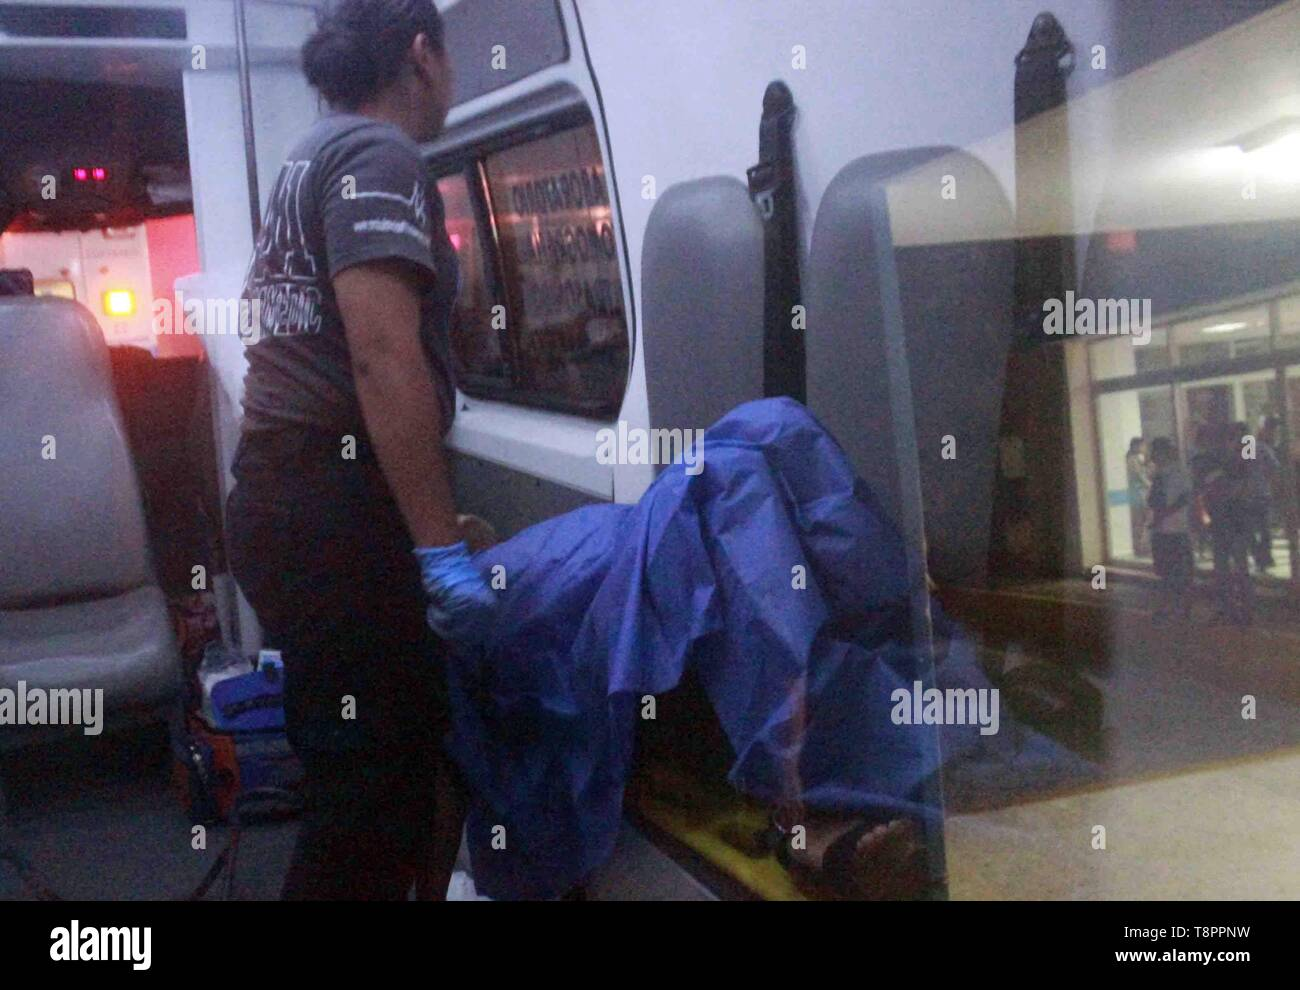 Playa del Carmen, Mexico. 14th May 2019. A wounded receives a medical treatment in the area where an armed attack took place in a bar in the Mexican town of Playa del Carmen, Mexico, 14 May 2019. The attack, which occurred around 9:45 pm local time on Monday, left a preliminary death toll and 11 wounded, according to the Attorney General of Quintana Roo state. Credit: EFE News Agency/Alamy Live News - Stock Image